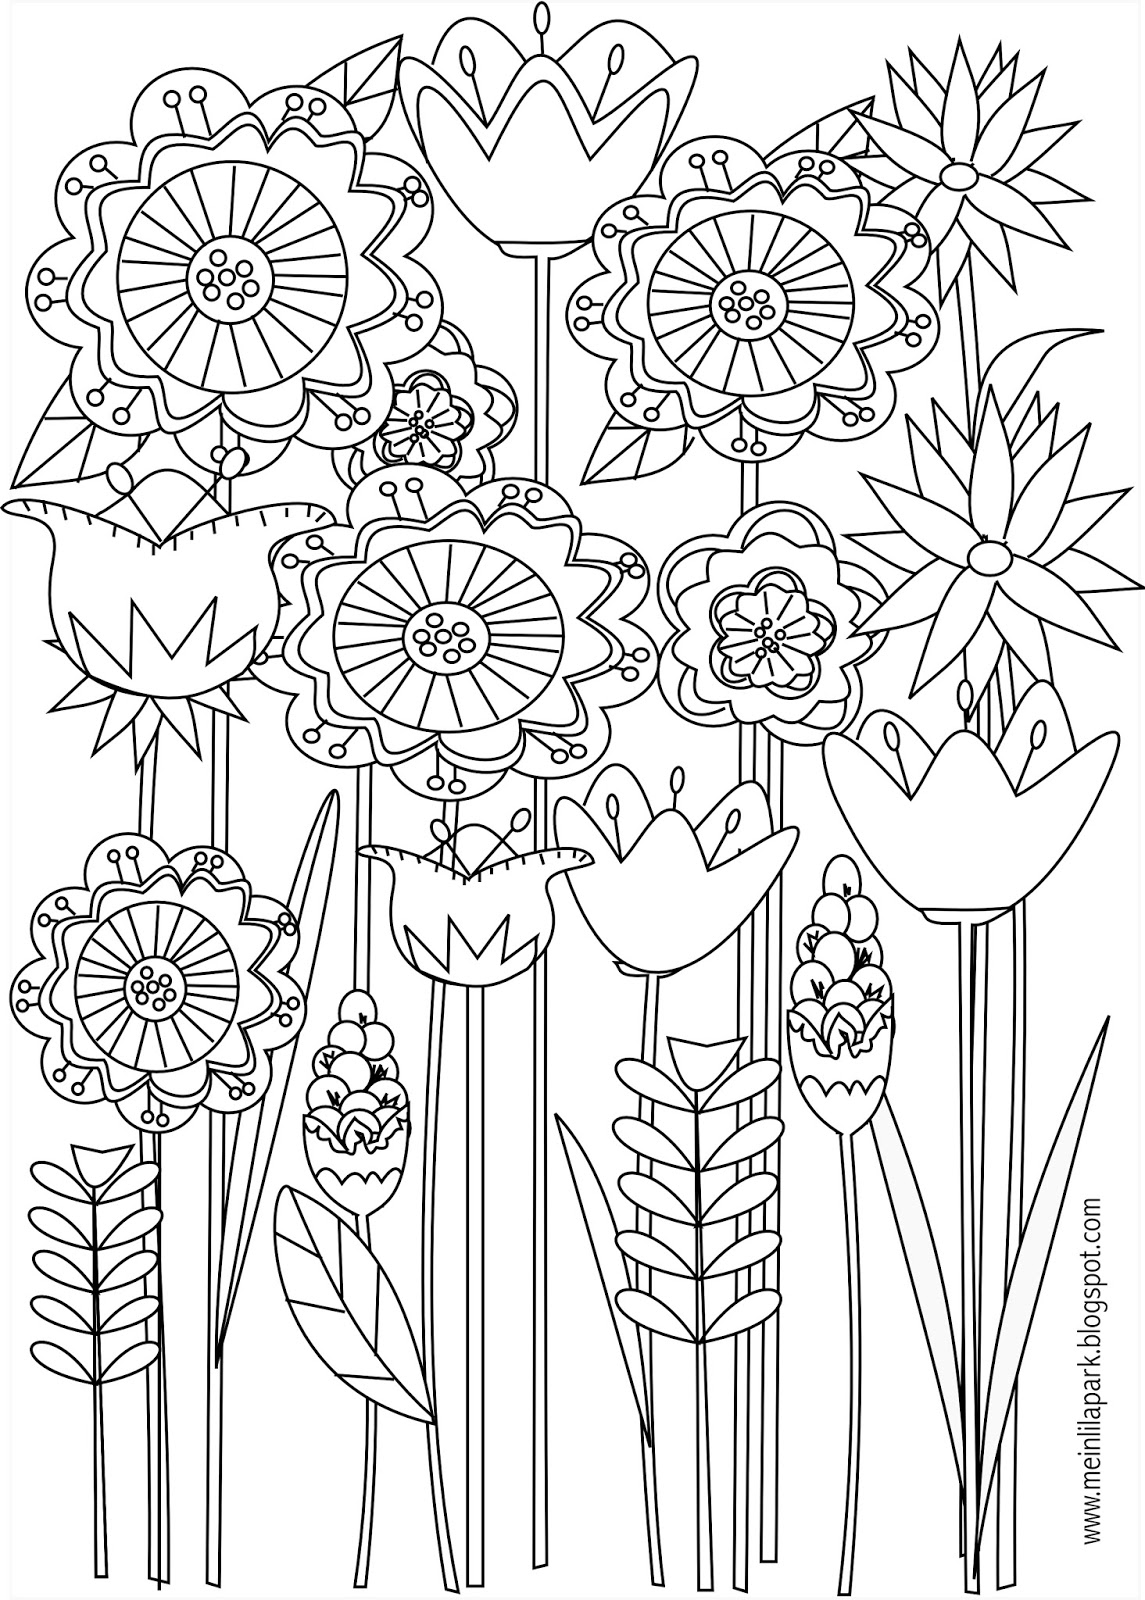 Free printable floral coloring page - ausdruckbare ... | free printable flower coloring pages